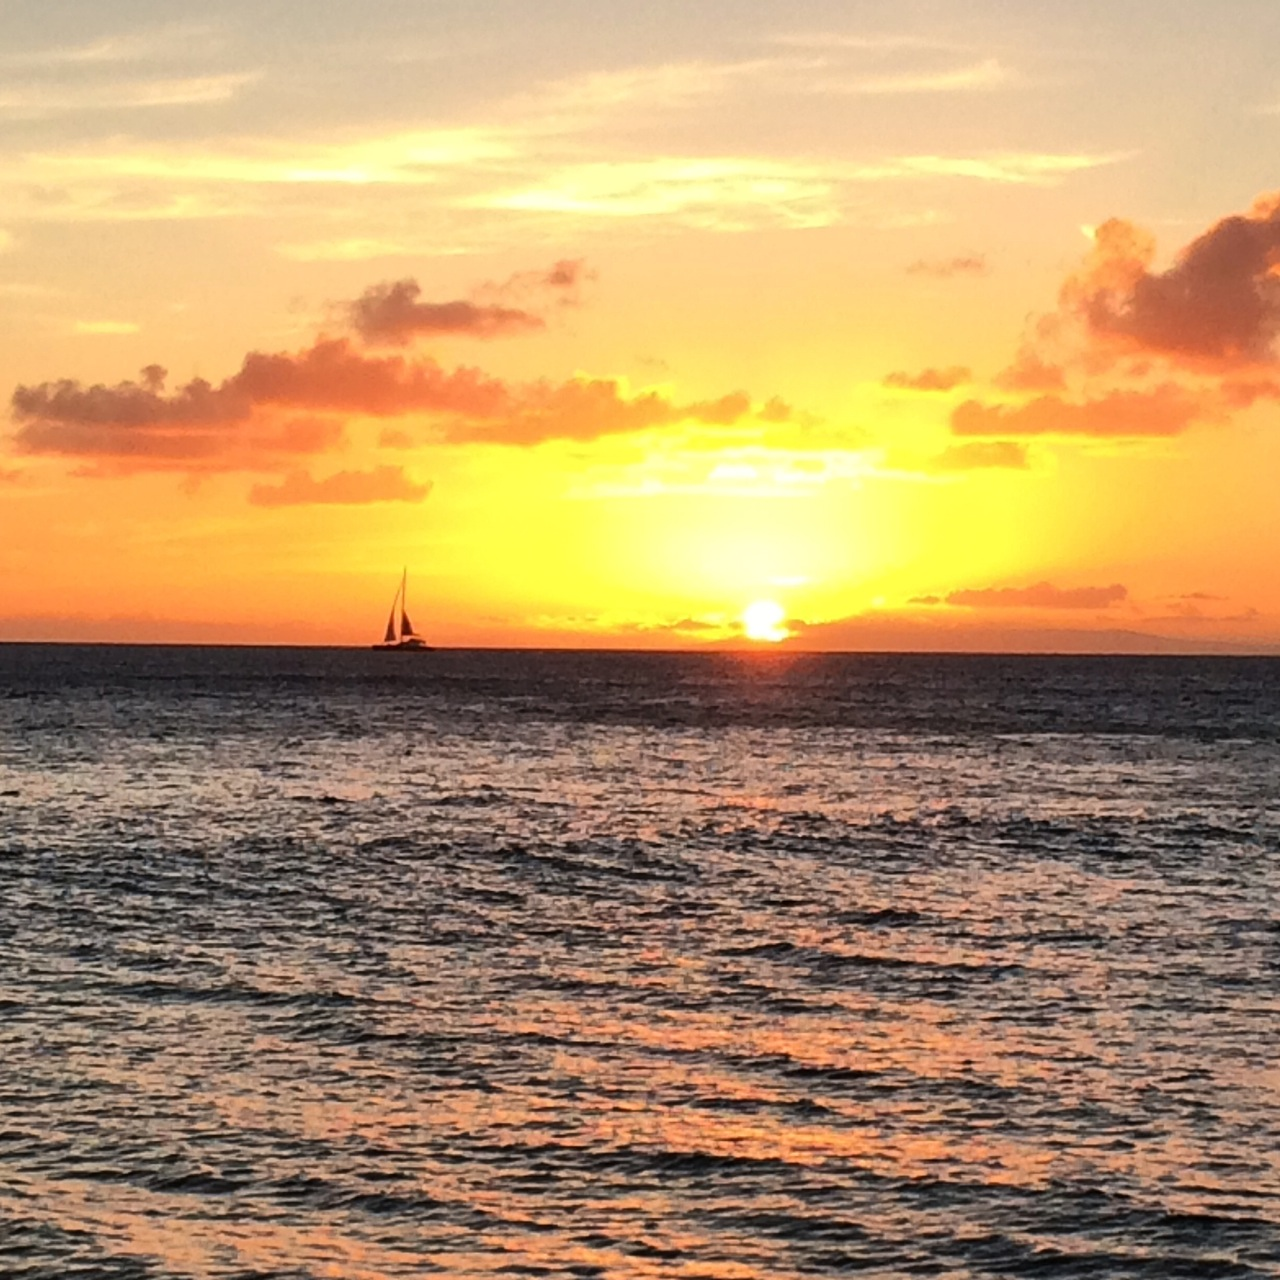 Sunset-sailboat-photo-by-yvonne-condes